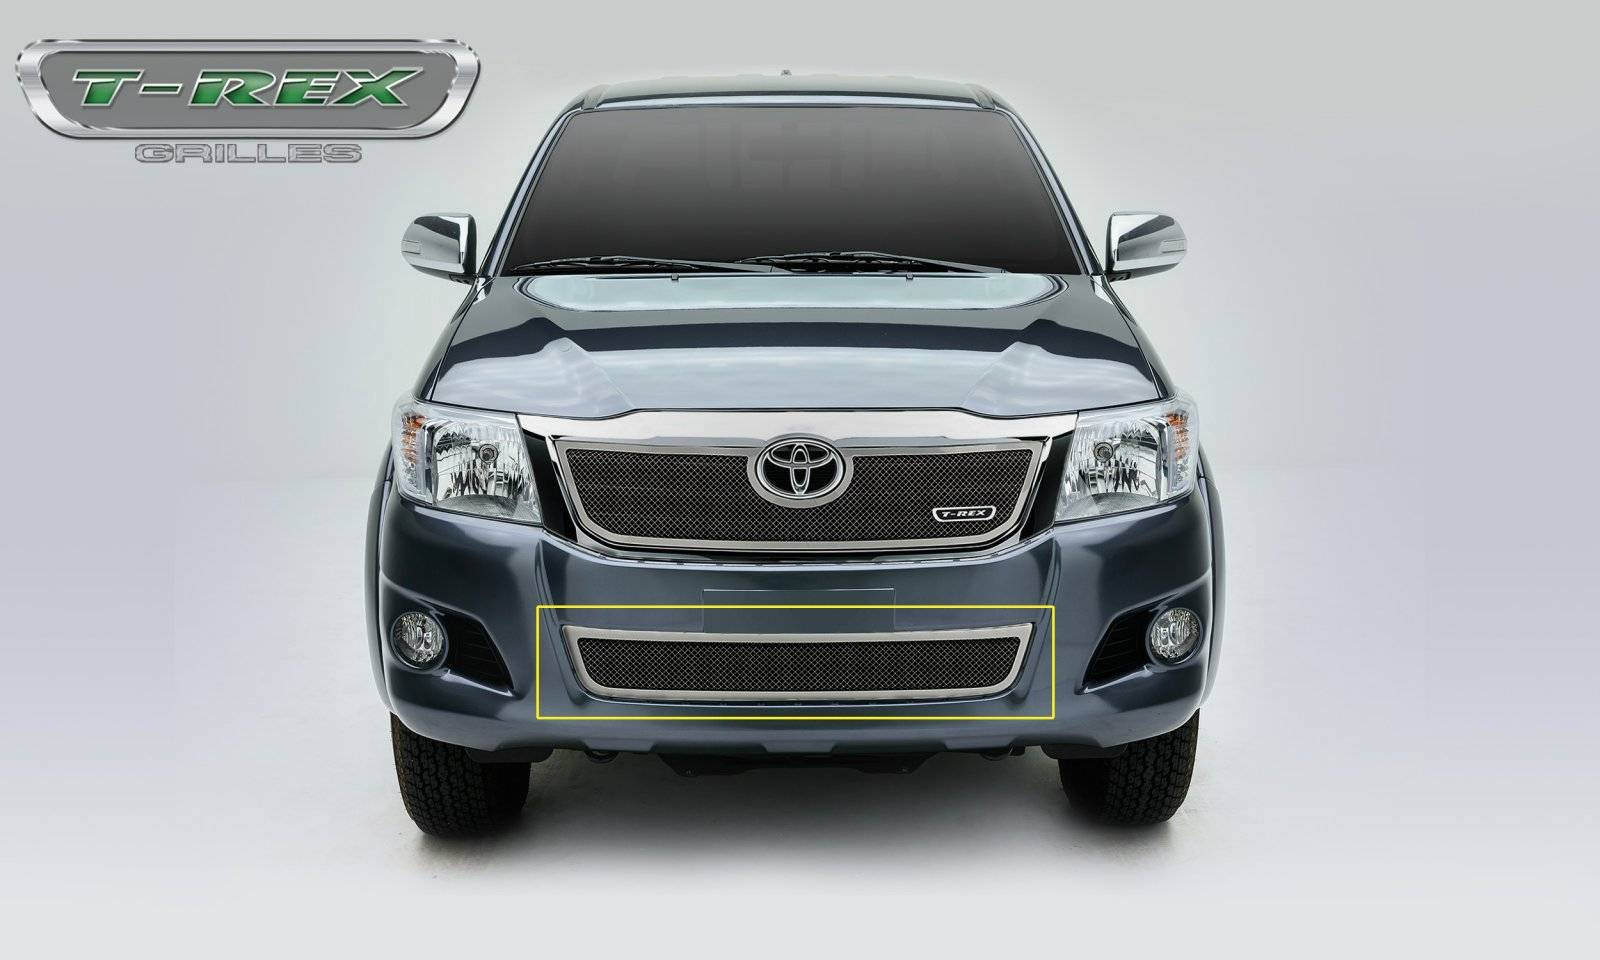 T-REX Toyota Hilux Upper Class, Formed Mesh Grille, Bumper, Overlay, 1 Pc, Chrome Plated Stainless Steel - Pt # 57909